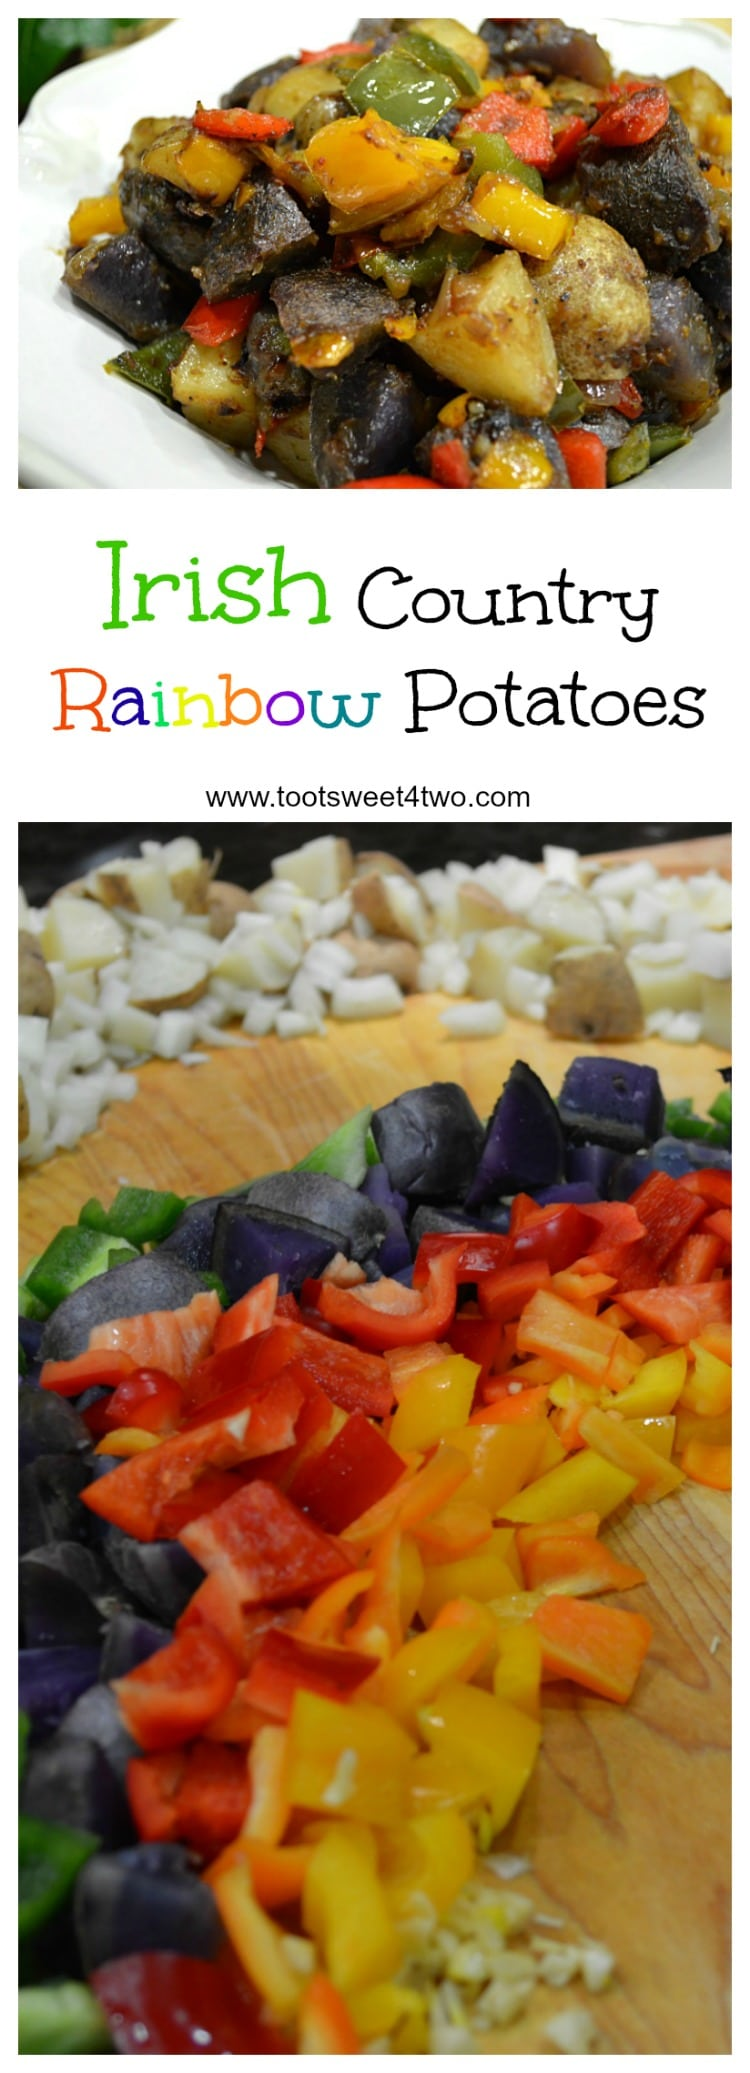 Irish Country Rainbow Potatoes collage